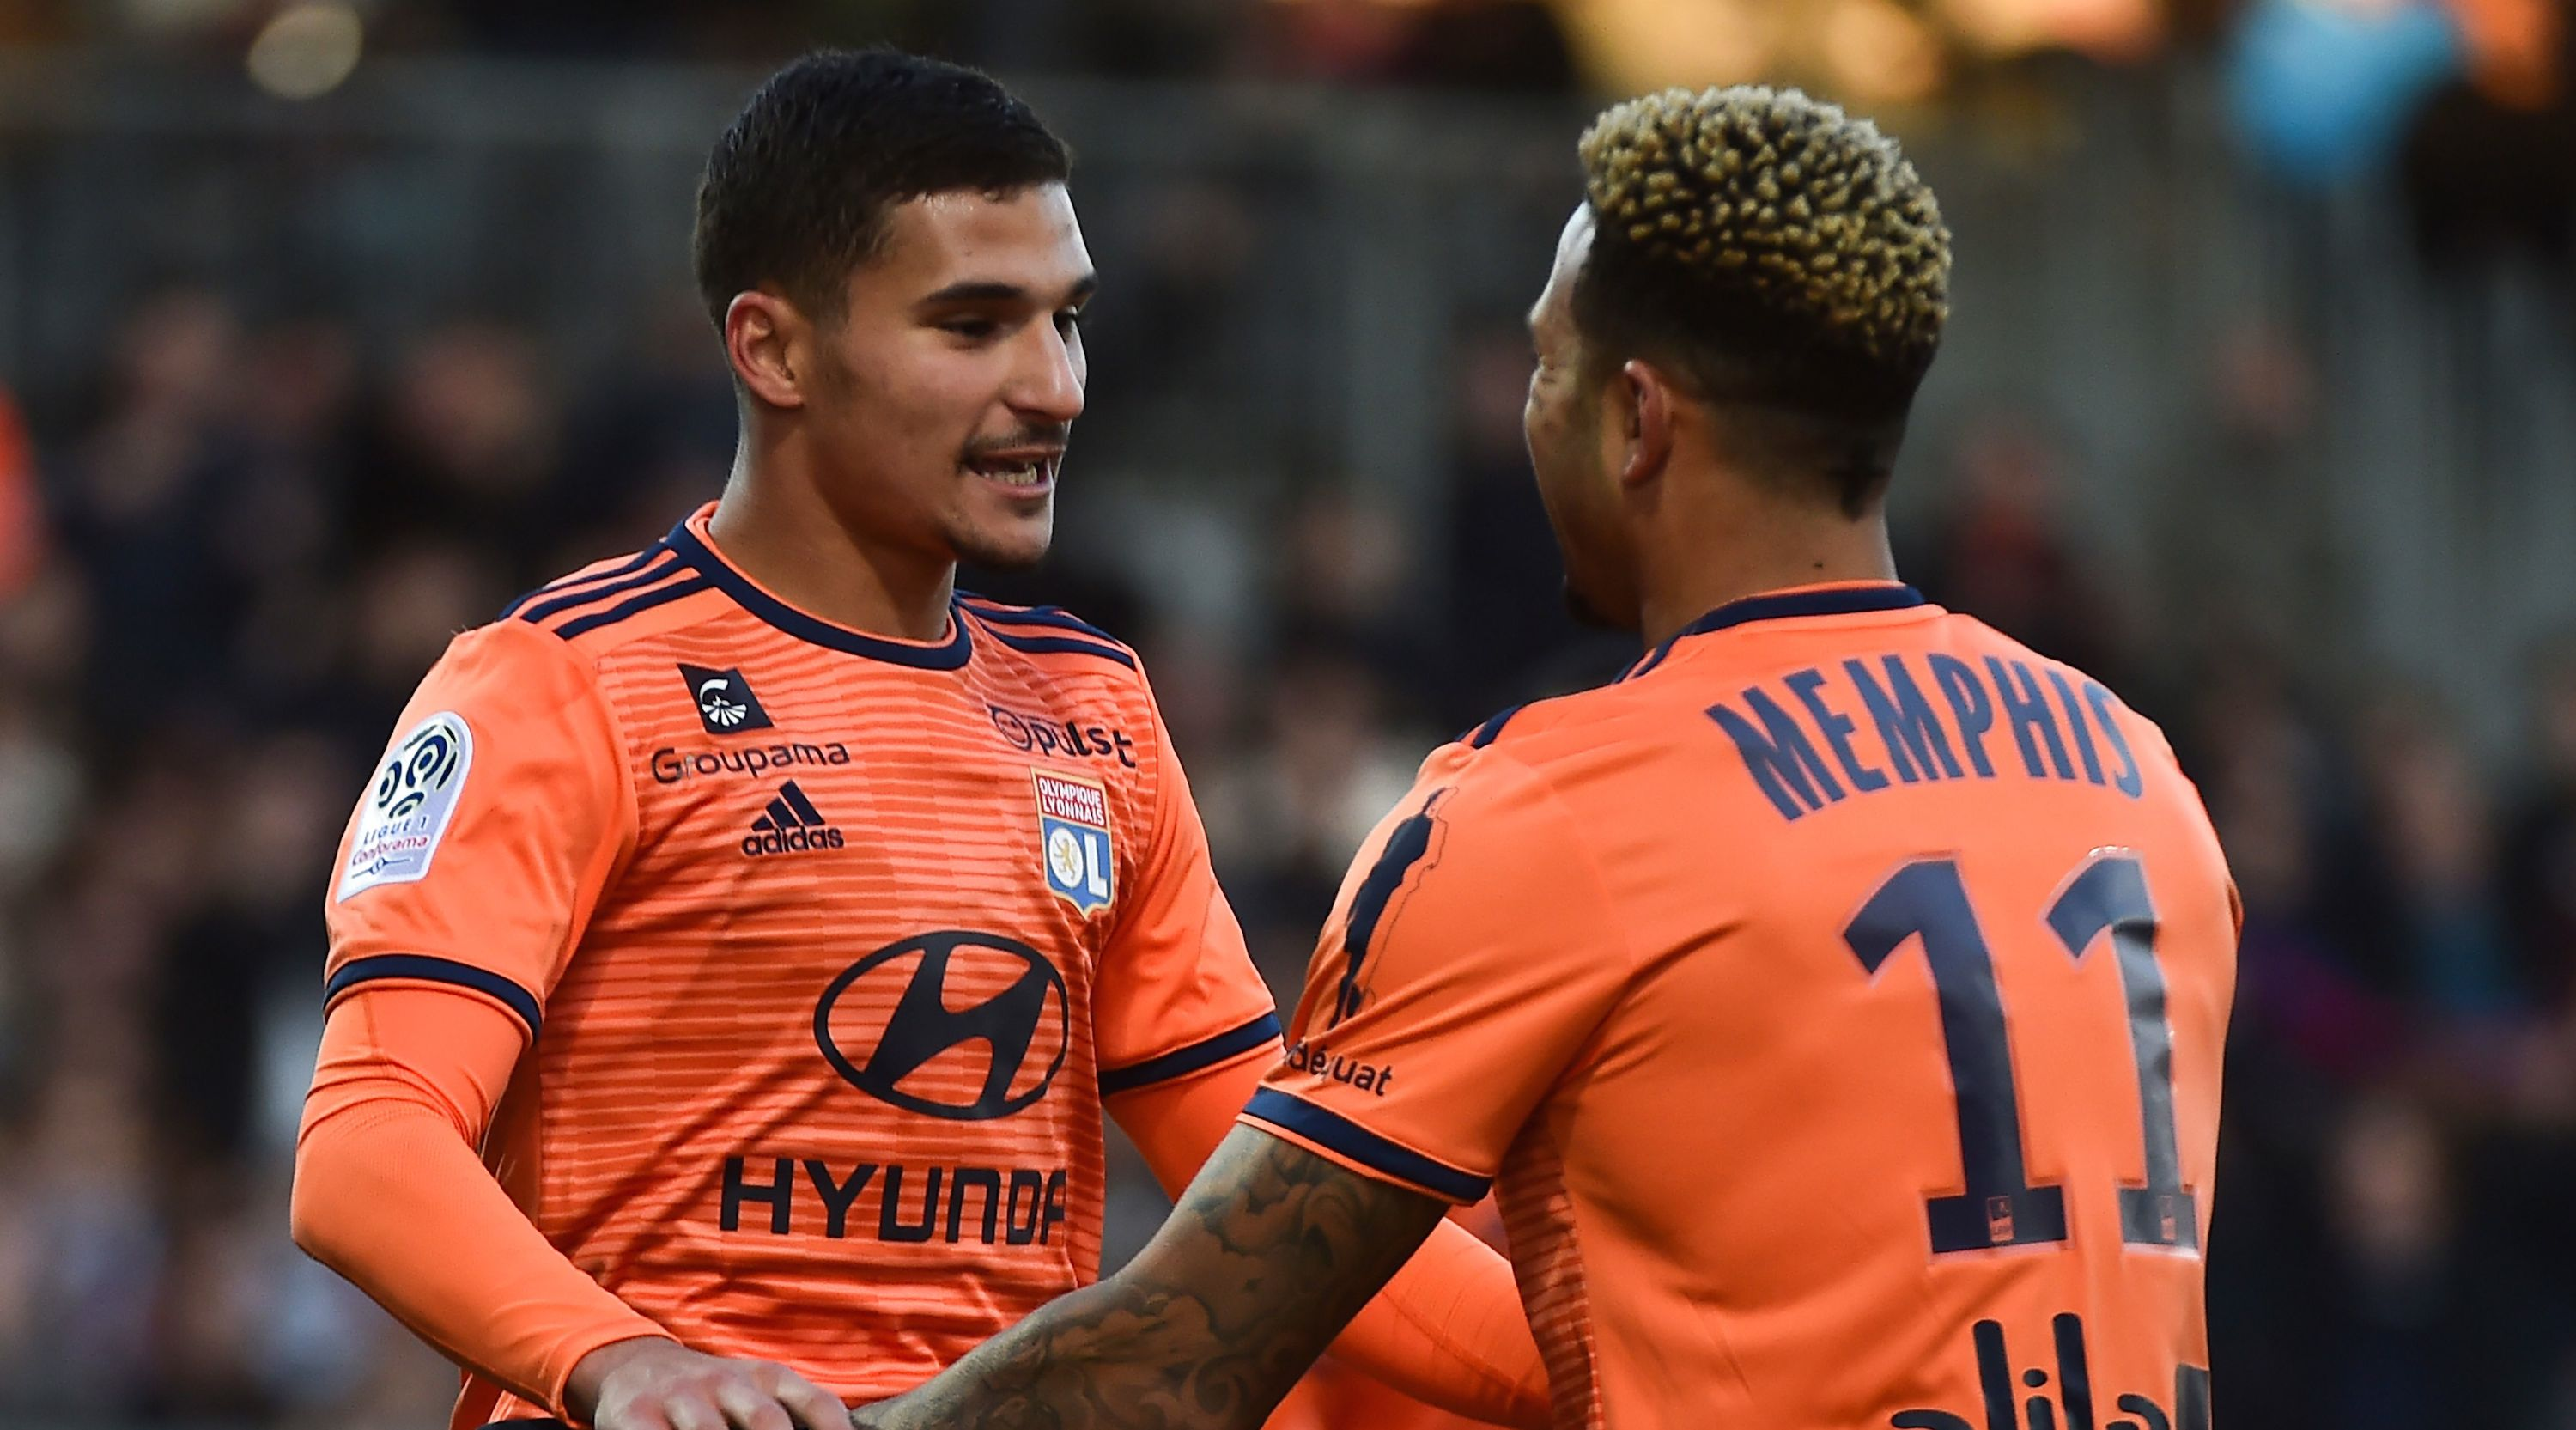 Lyon's French midfielder Houssem Aouar (L) celebrates with Lyon's Dutch forward Memphis Depay (R) after scoring a goal during the French L1 football match between Angers (SCO) and Lyon (OL), on October 27, 2018, at the Raymond-Kopa Stadium, in Angers, northwestern France. (Photo by JEAN-FRANCOIS MONIER / AFP) (Photo credit should read JEAN-FRANCOIS MONIER/AFP/Getty Images)